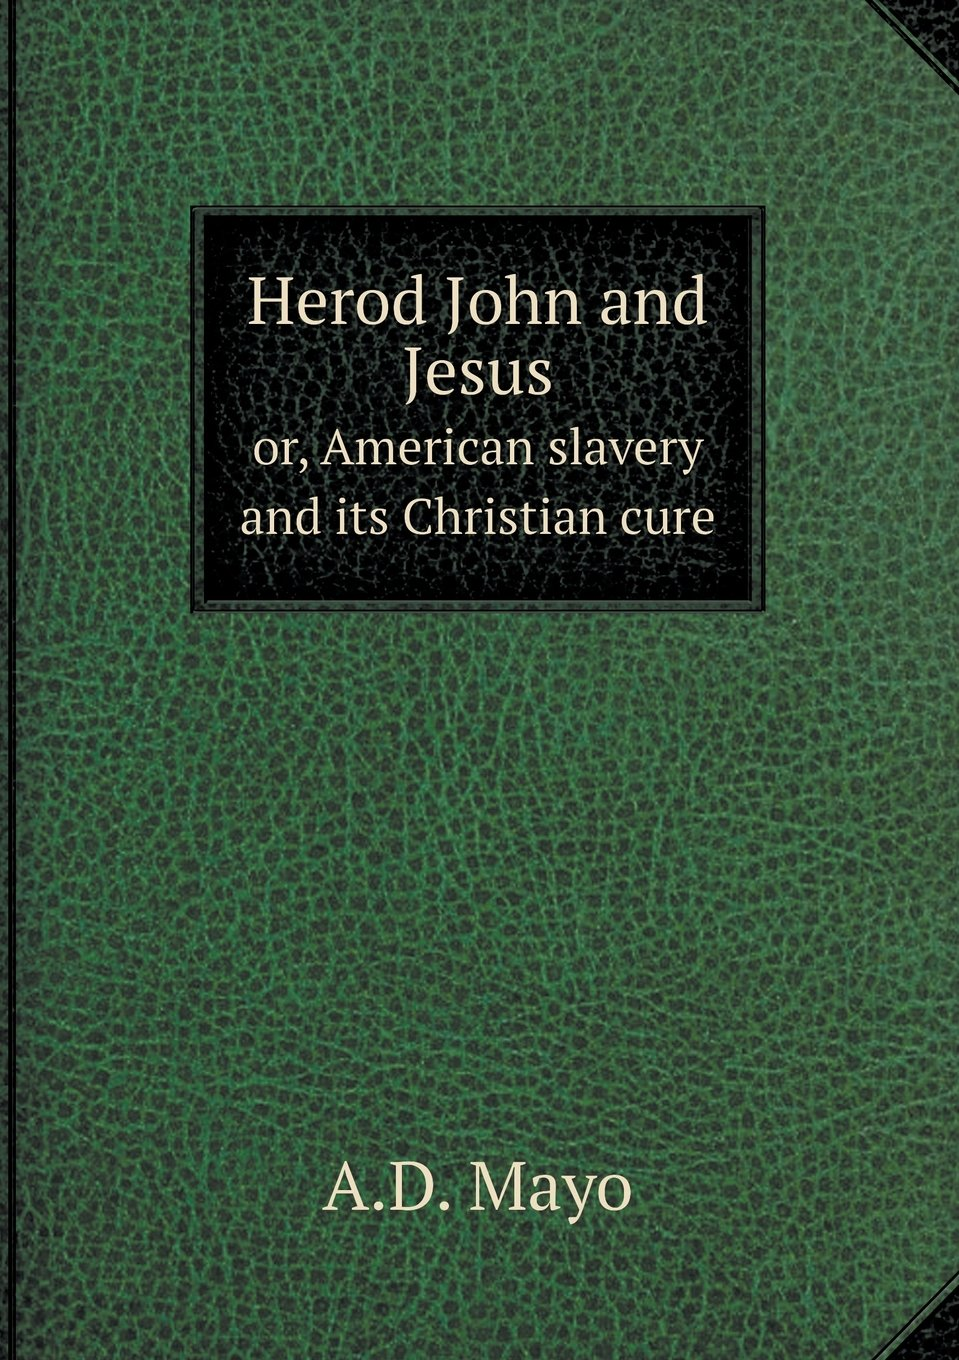 Download Herod John and Jesus or, American slavery and its Christian cure ebook